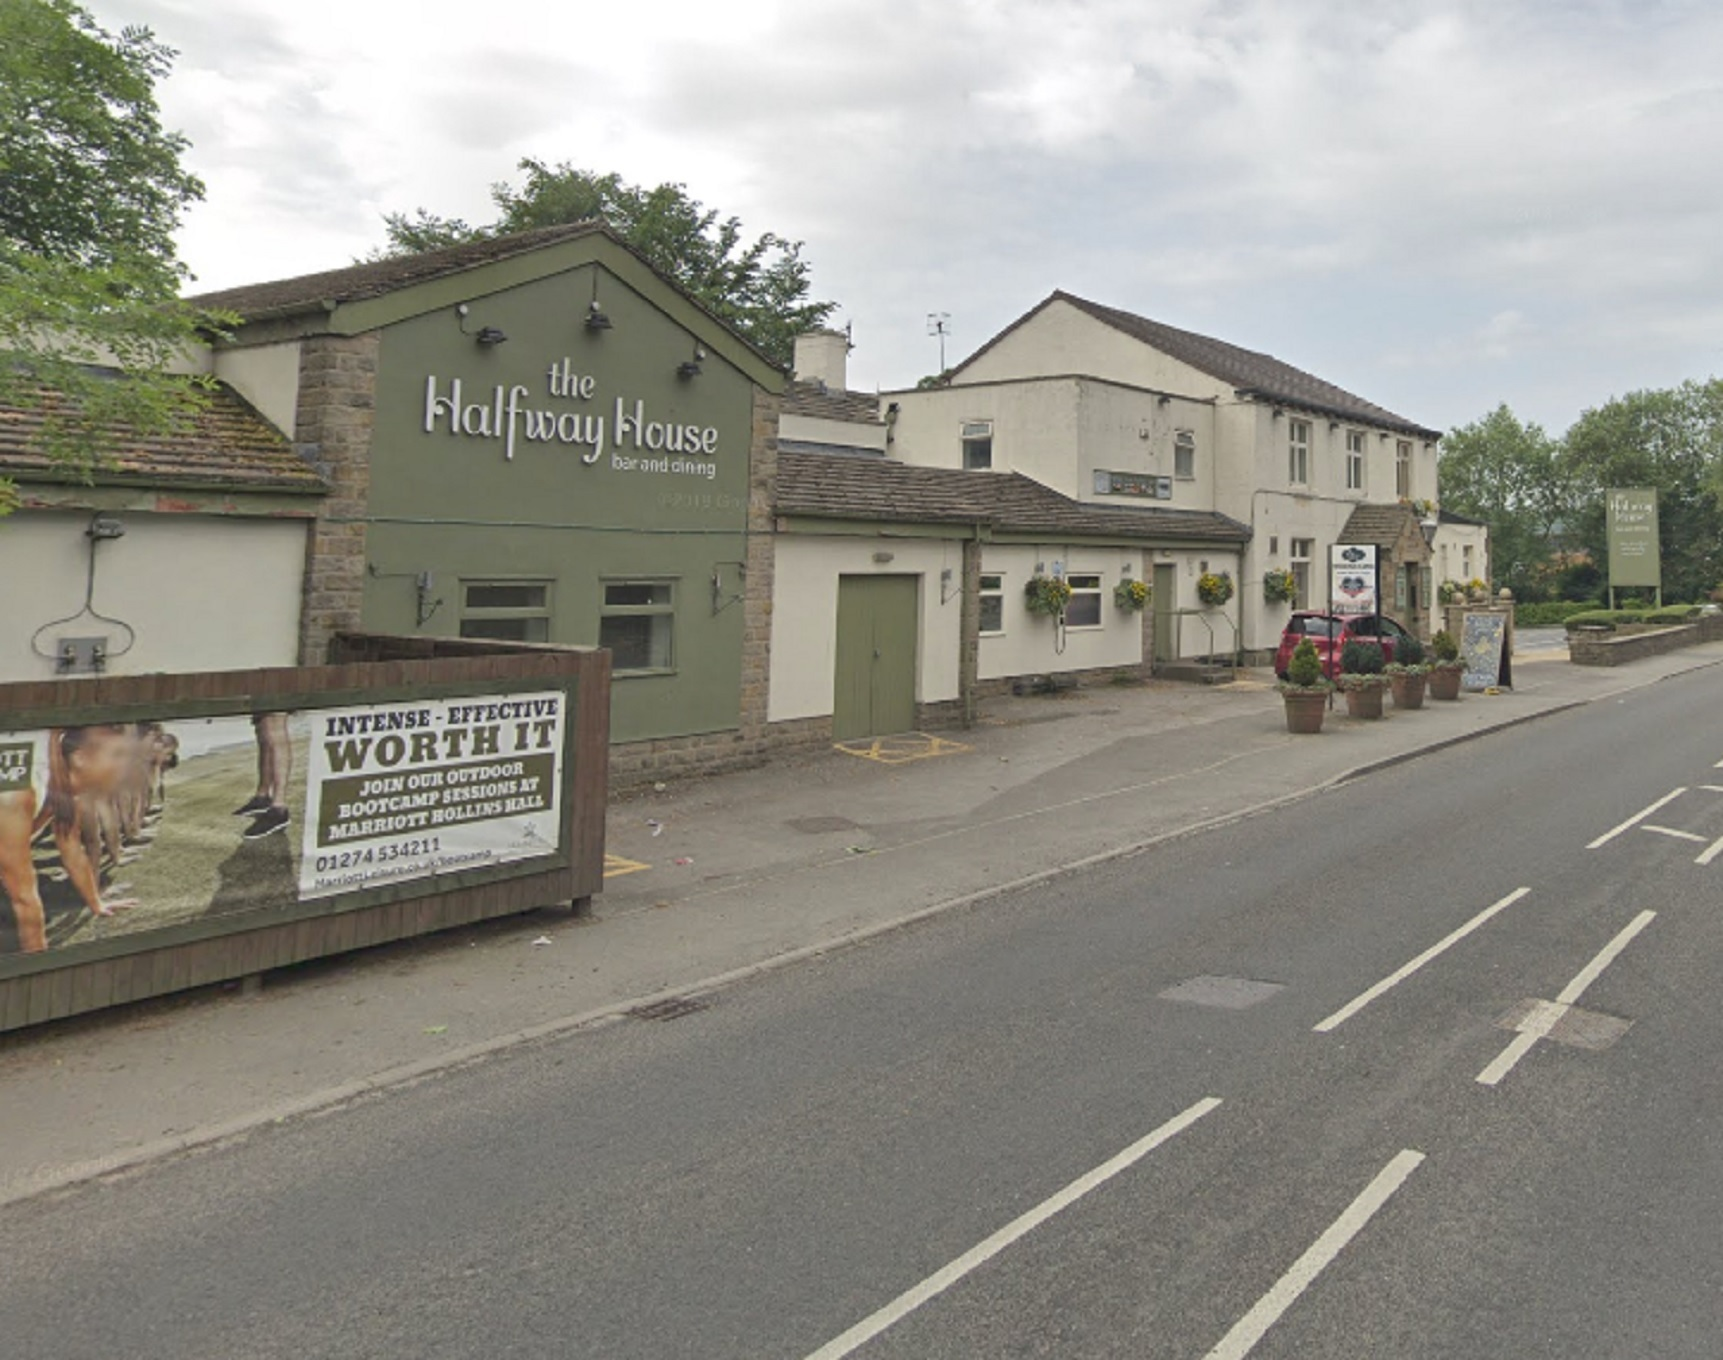 Halfway House in Baildon. Picture: Google Streetview